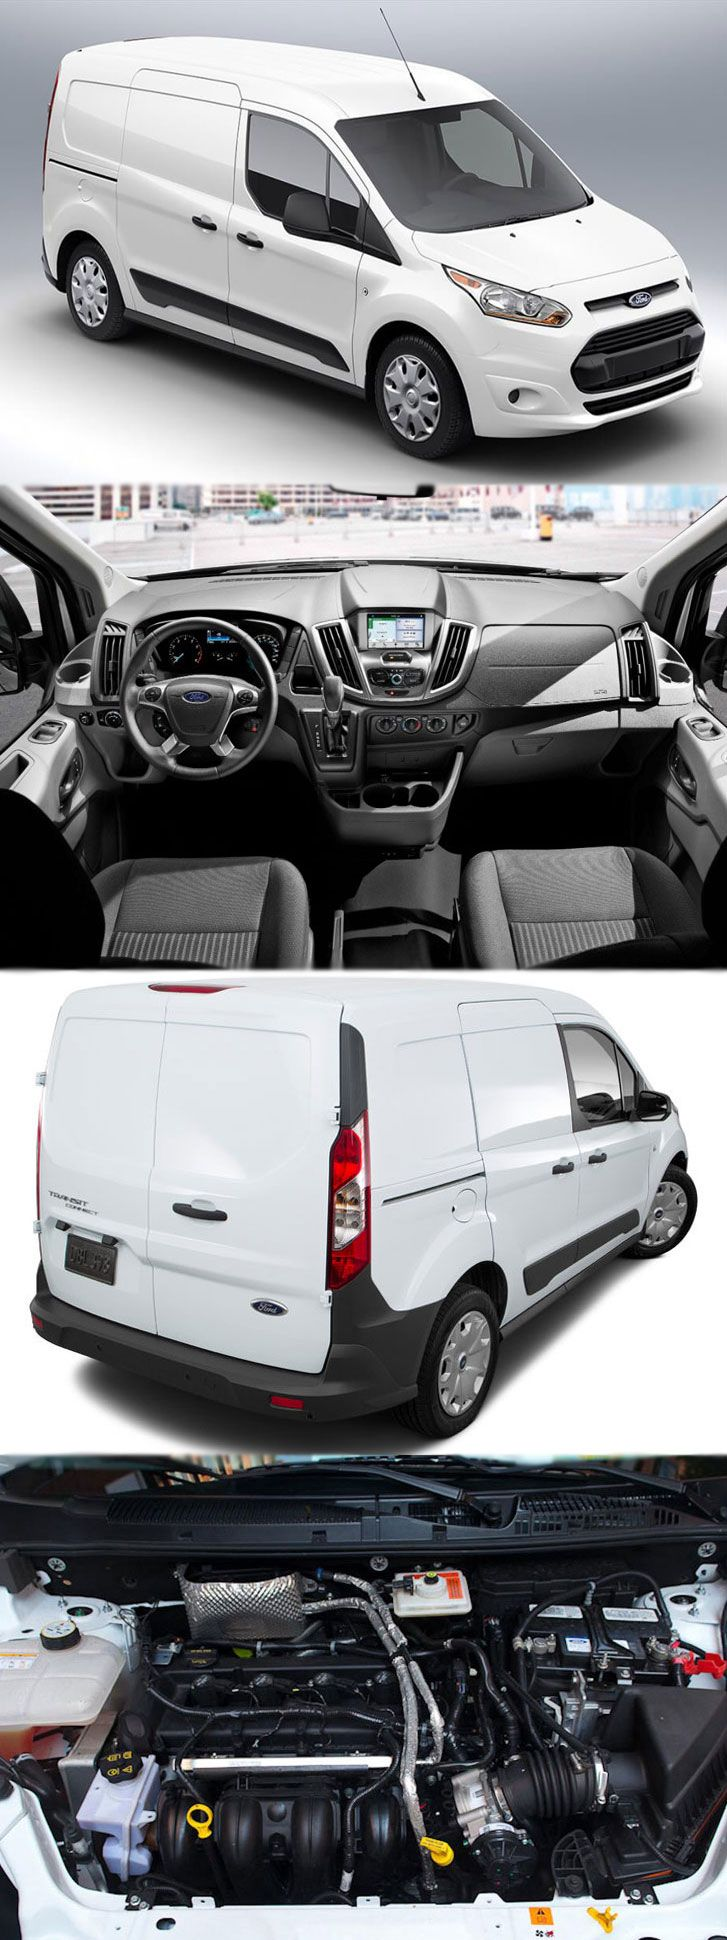 Meet ford s most fuel efficient panel van in the uk get more details at http